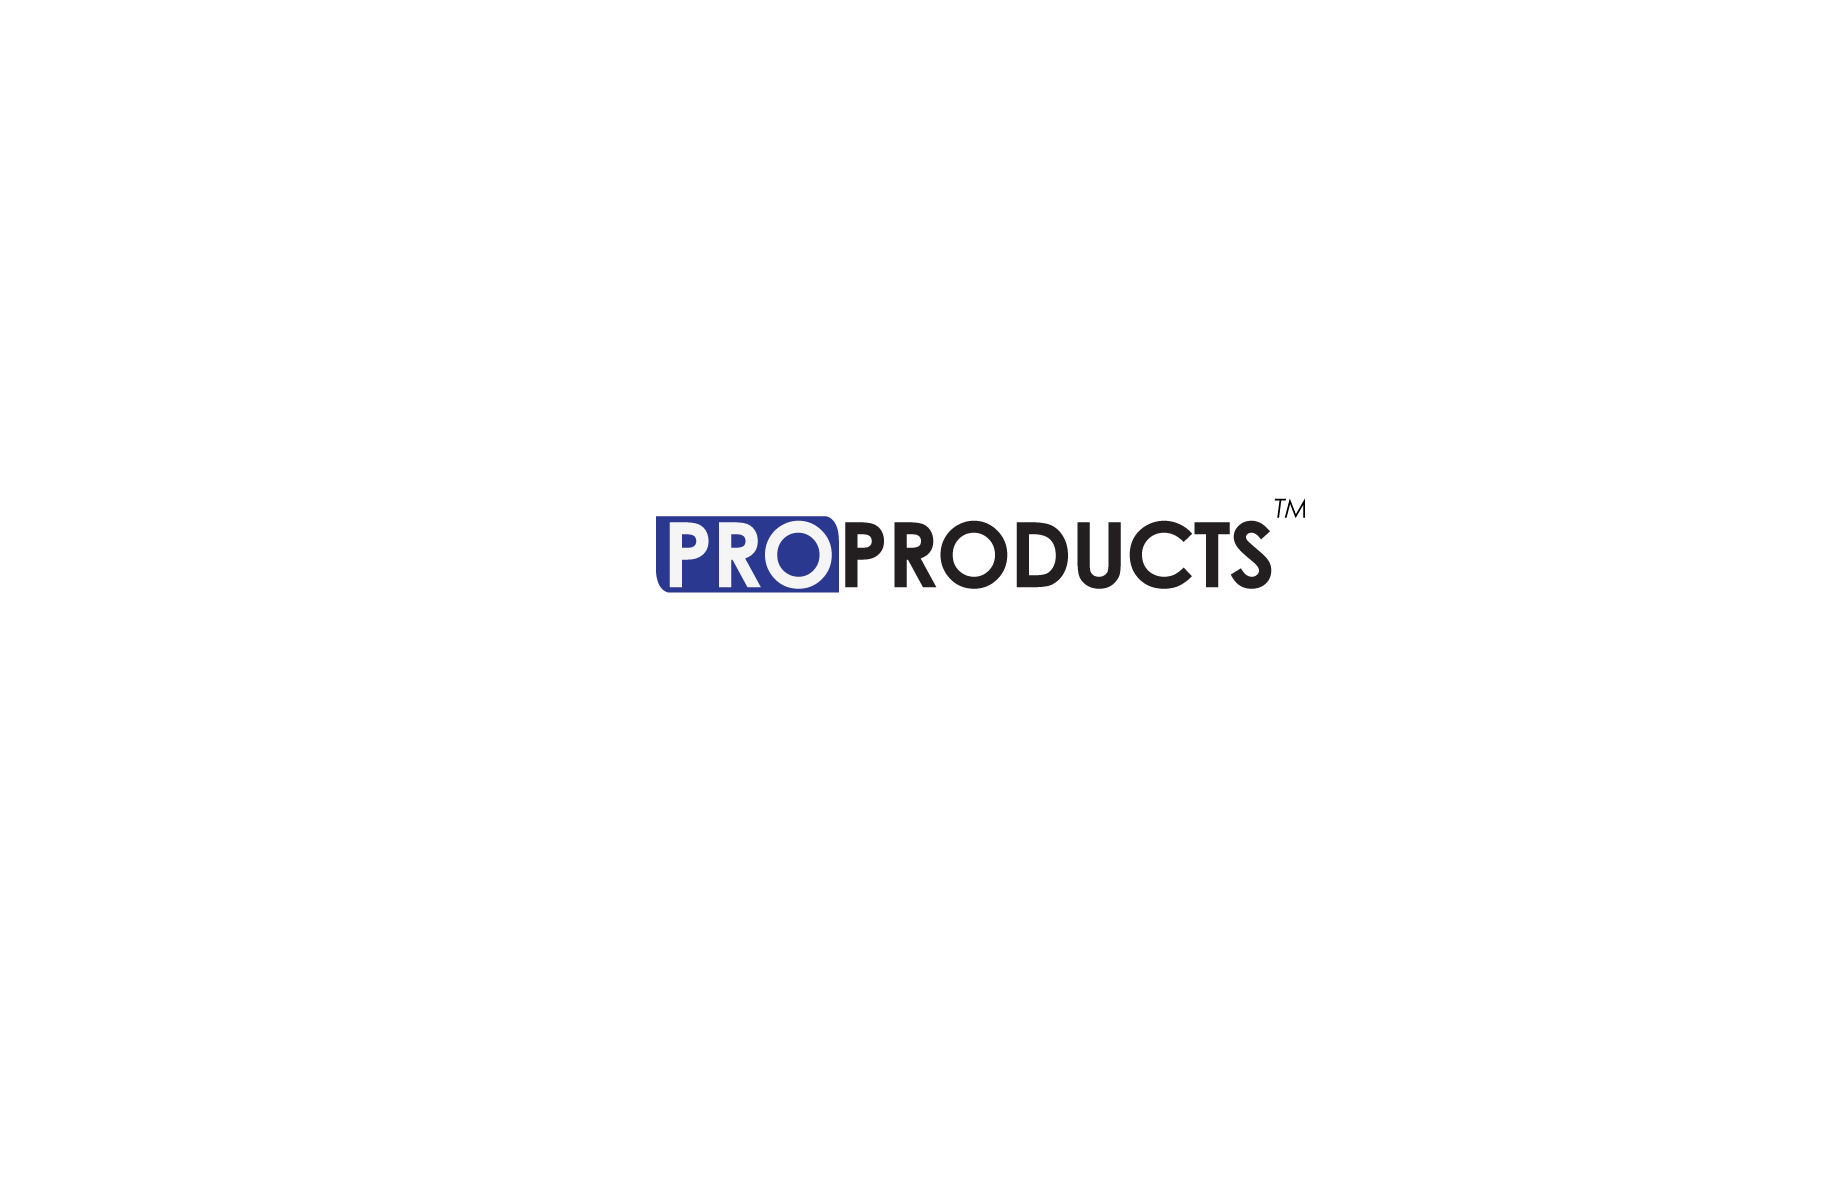 Logo Design by Jan Chua - Entry No. 8 in the Logo Design Contest Fun yet Professional Logo Design for ProProducts.